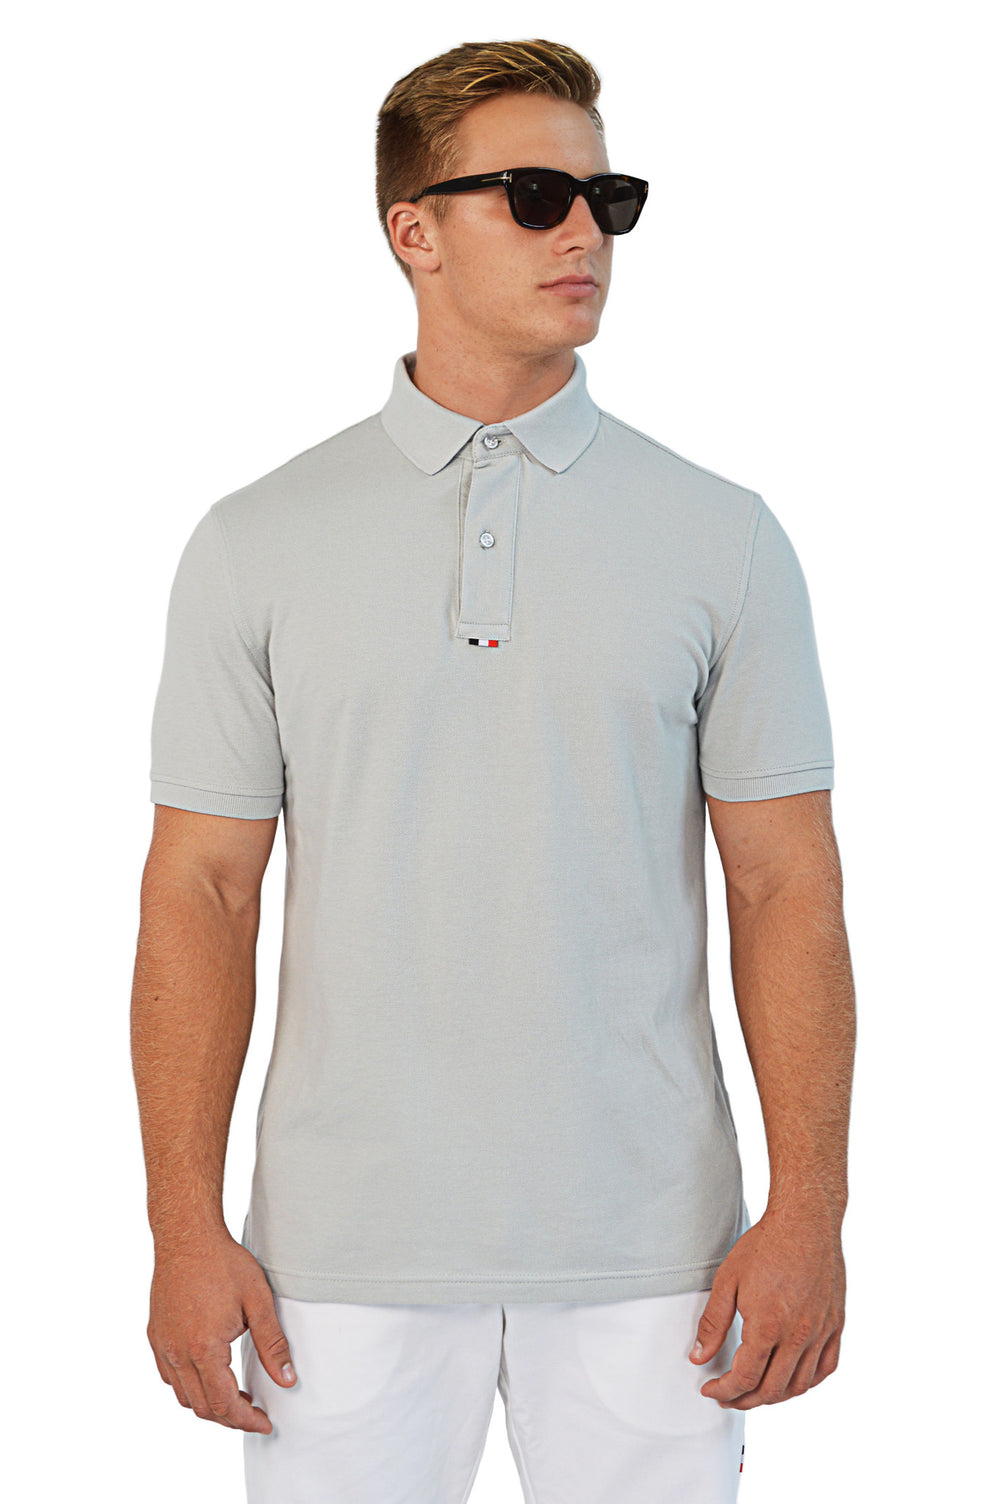 front view grey tailored polo